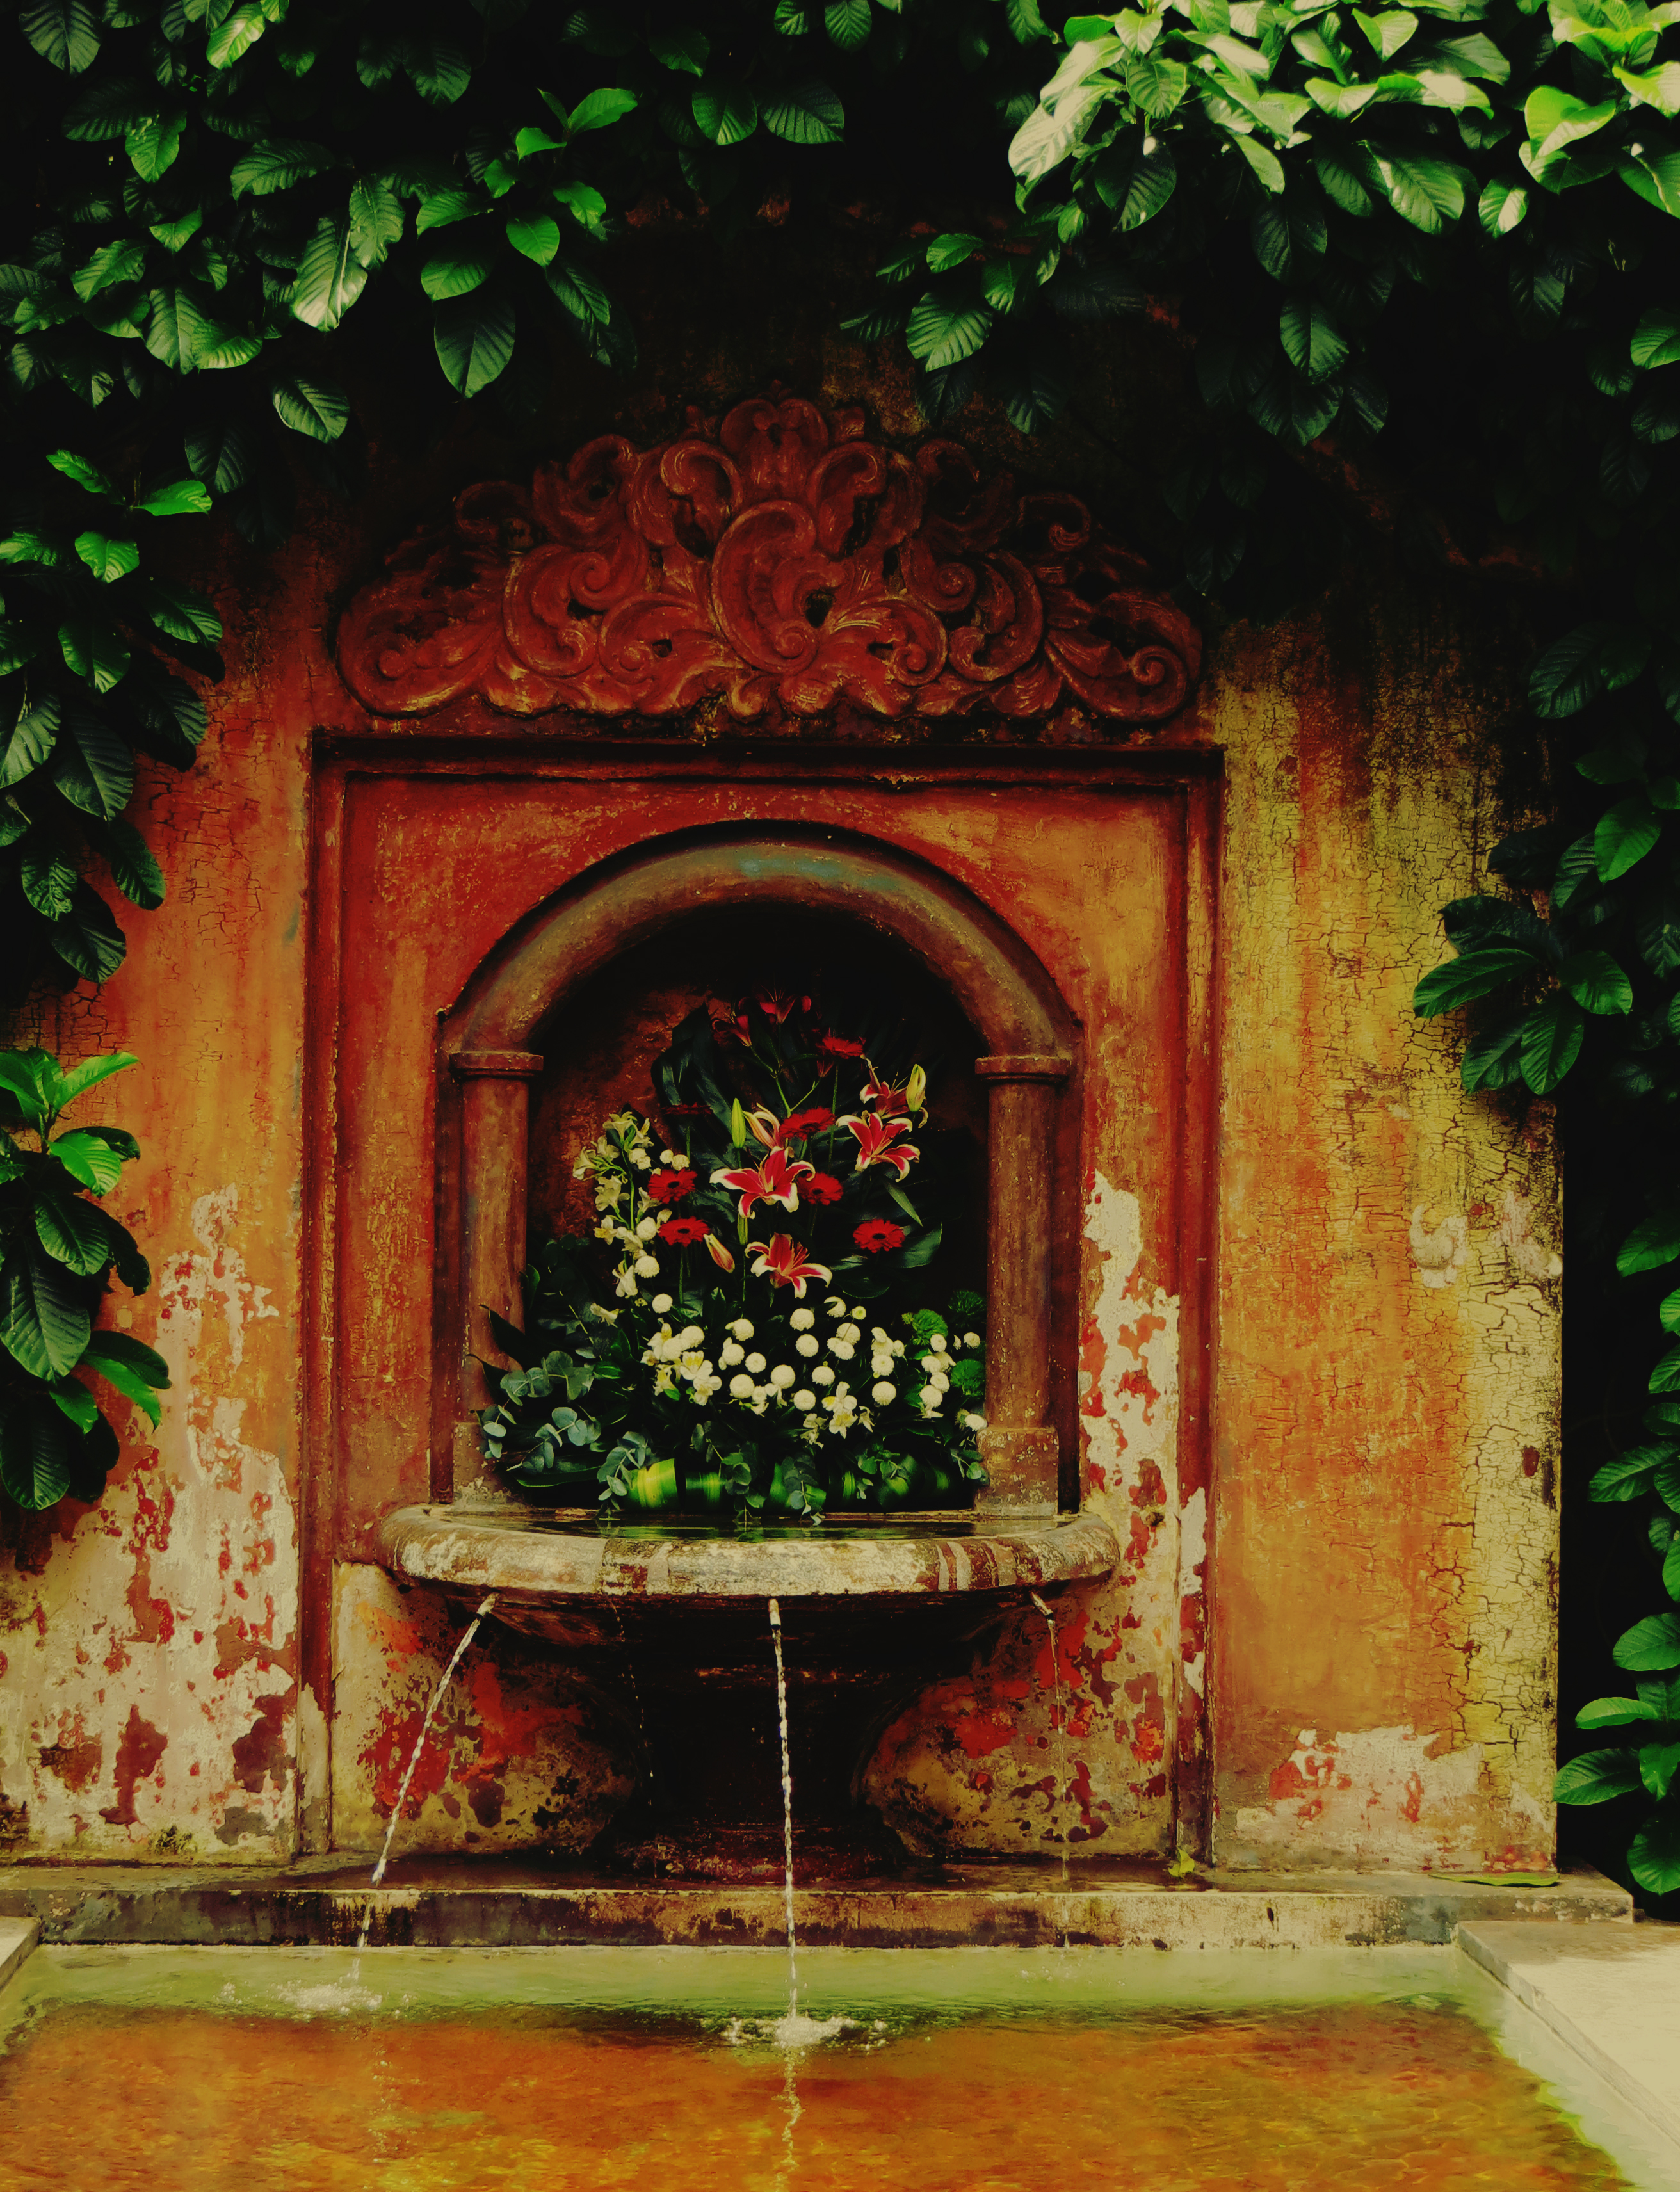 80068 Screensavers and Wallpapers Fountain for phone. Download Flowers, Fountain, Miscellanea, Miscellaneous, Old, Shabby, Ancient, Source pictures for free